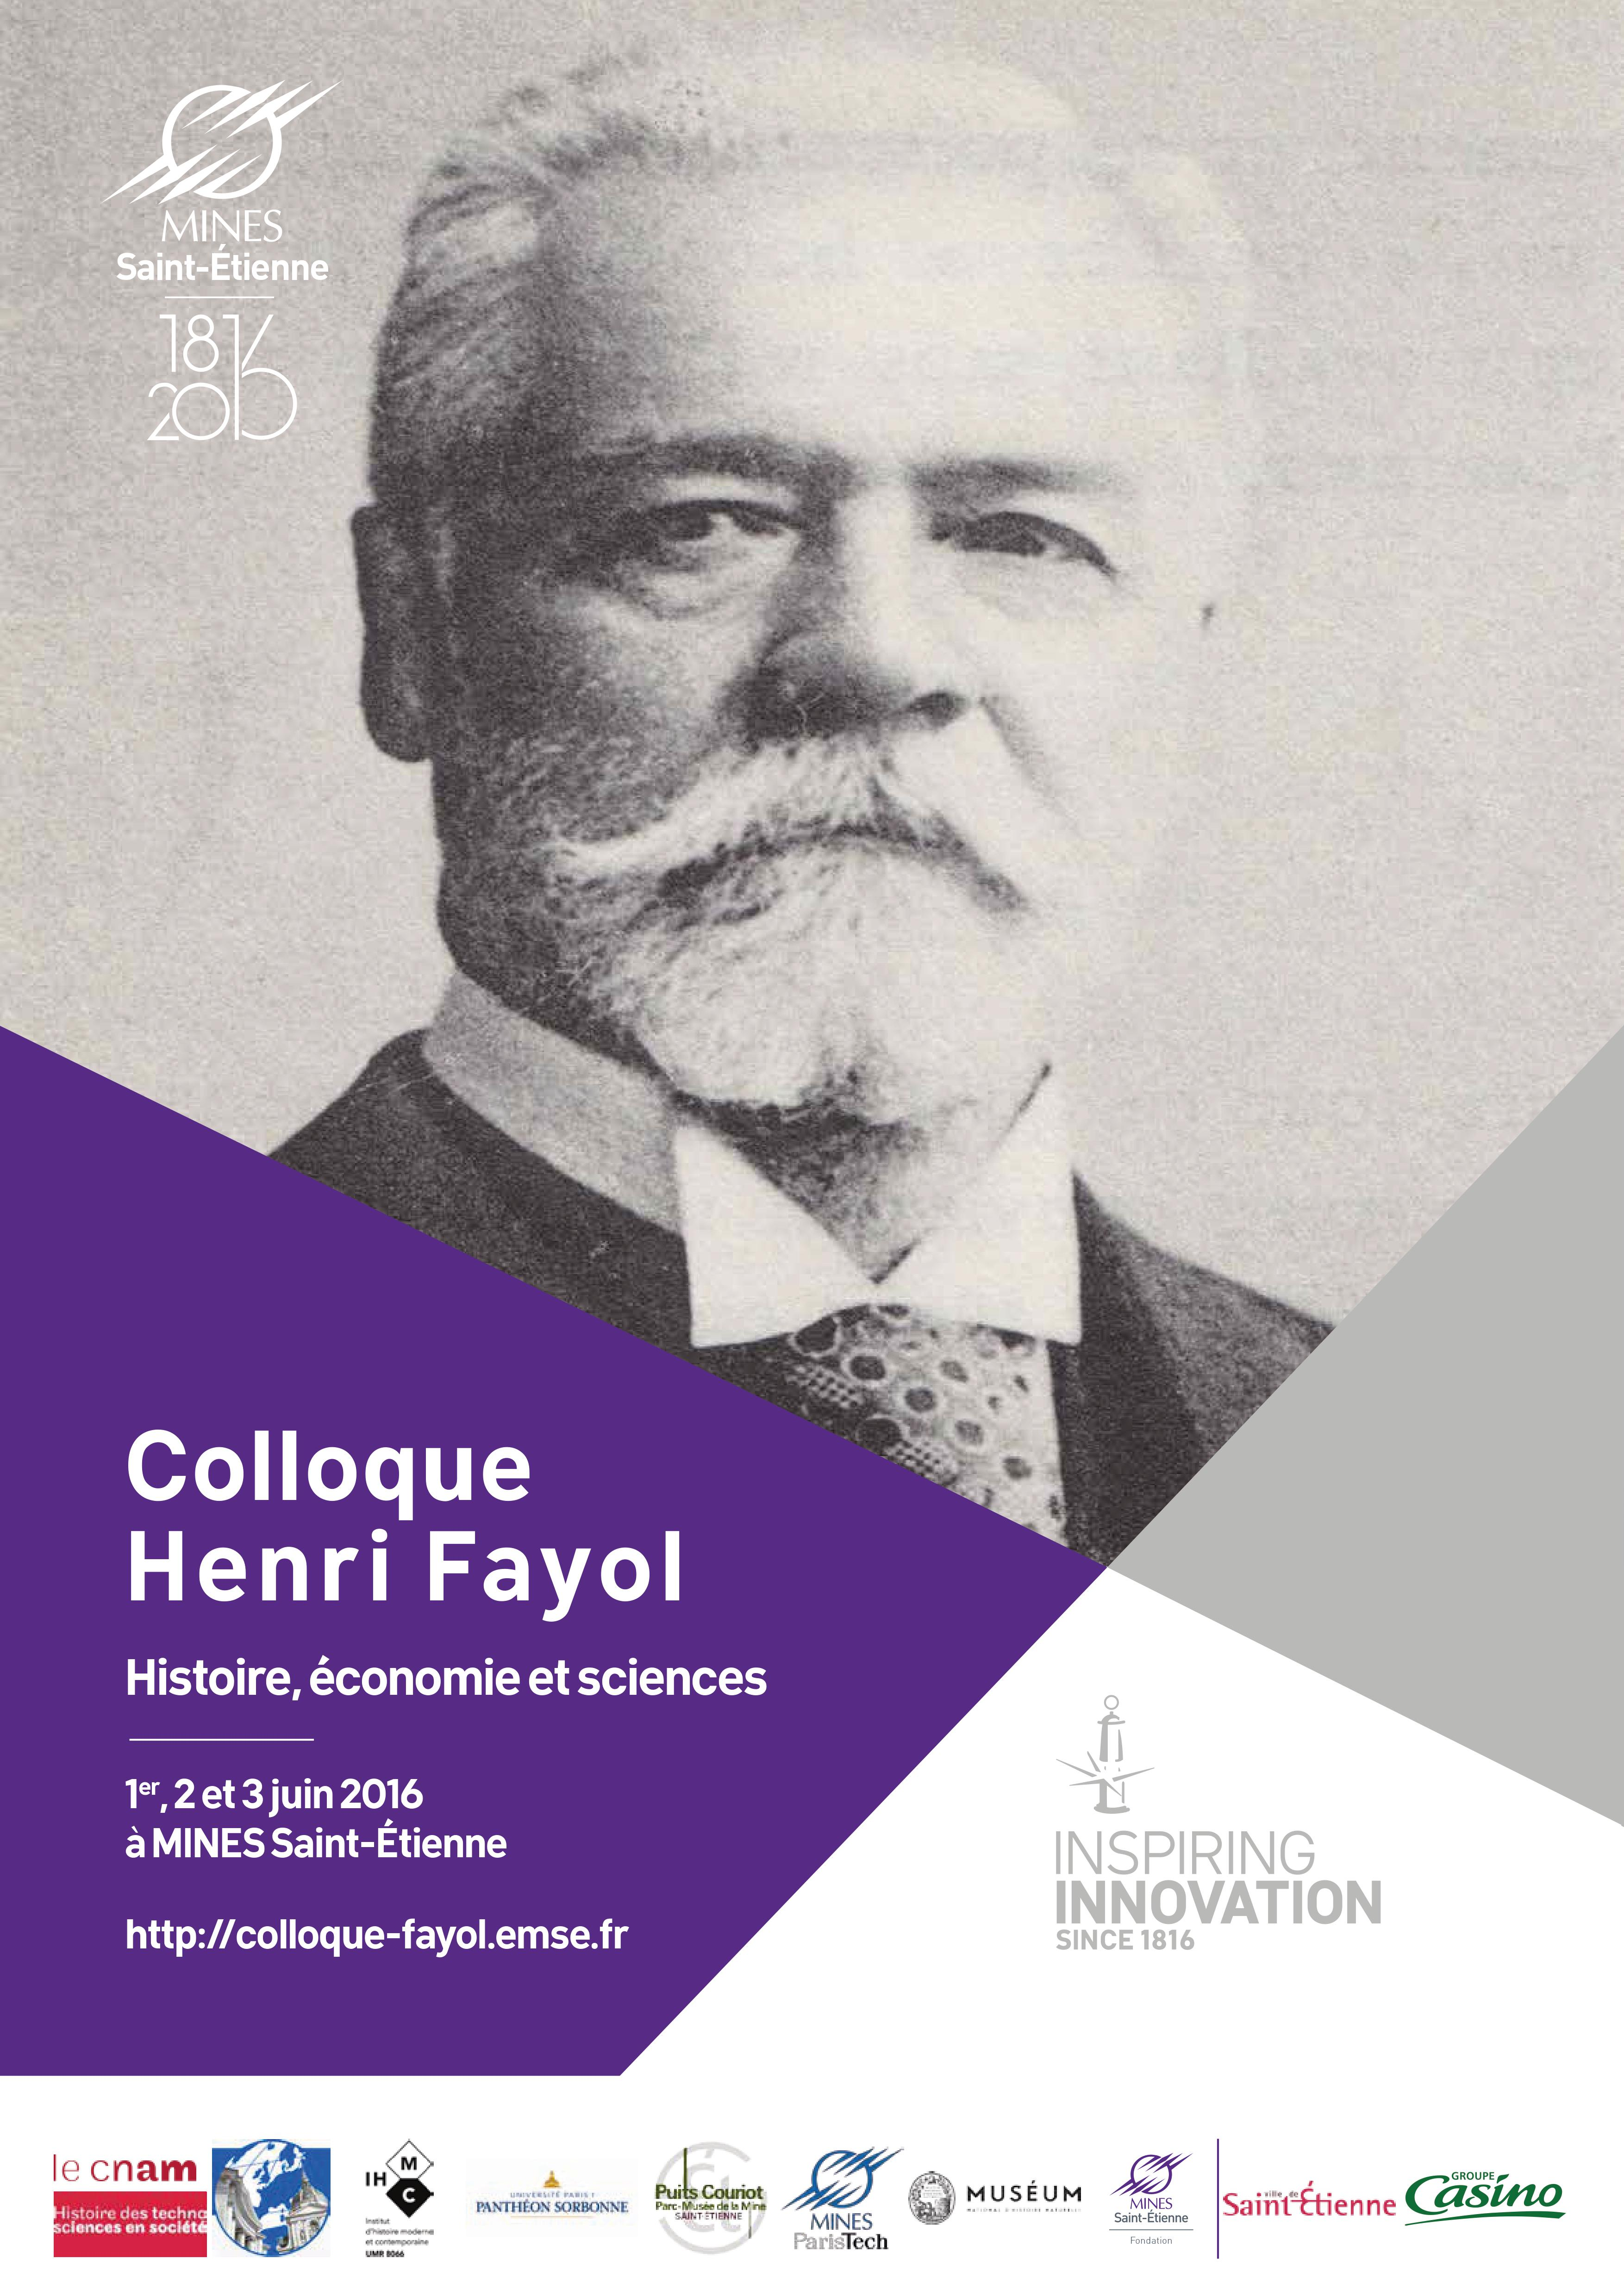 Colloque Henri Fayol